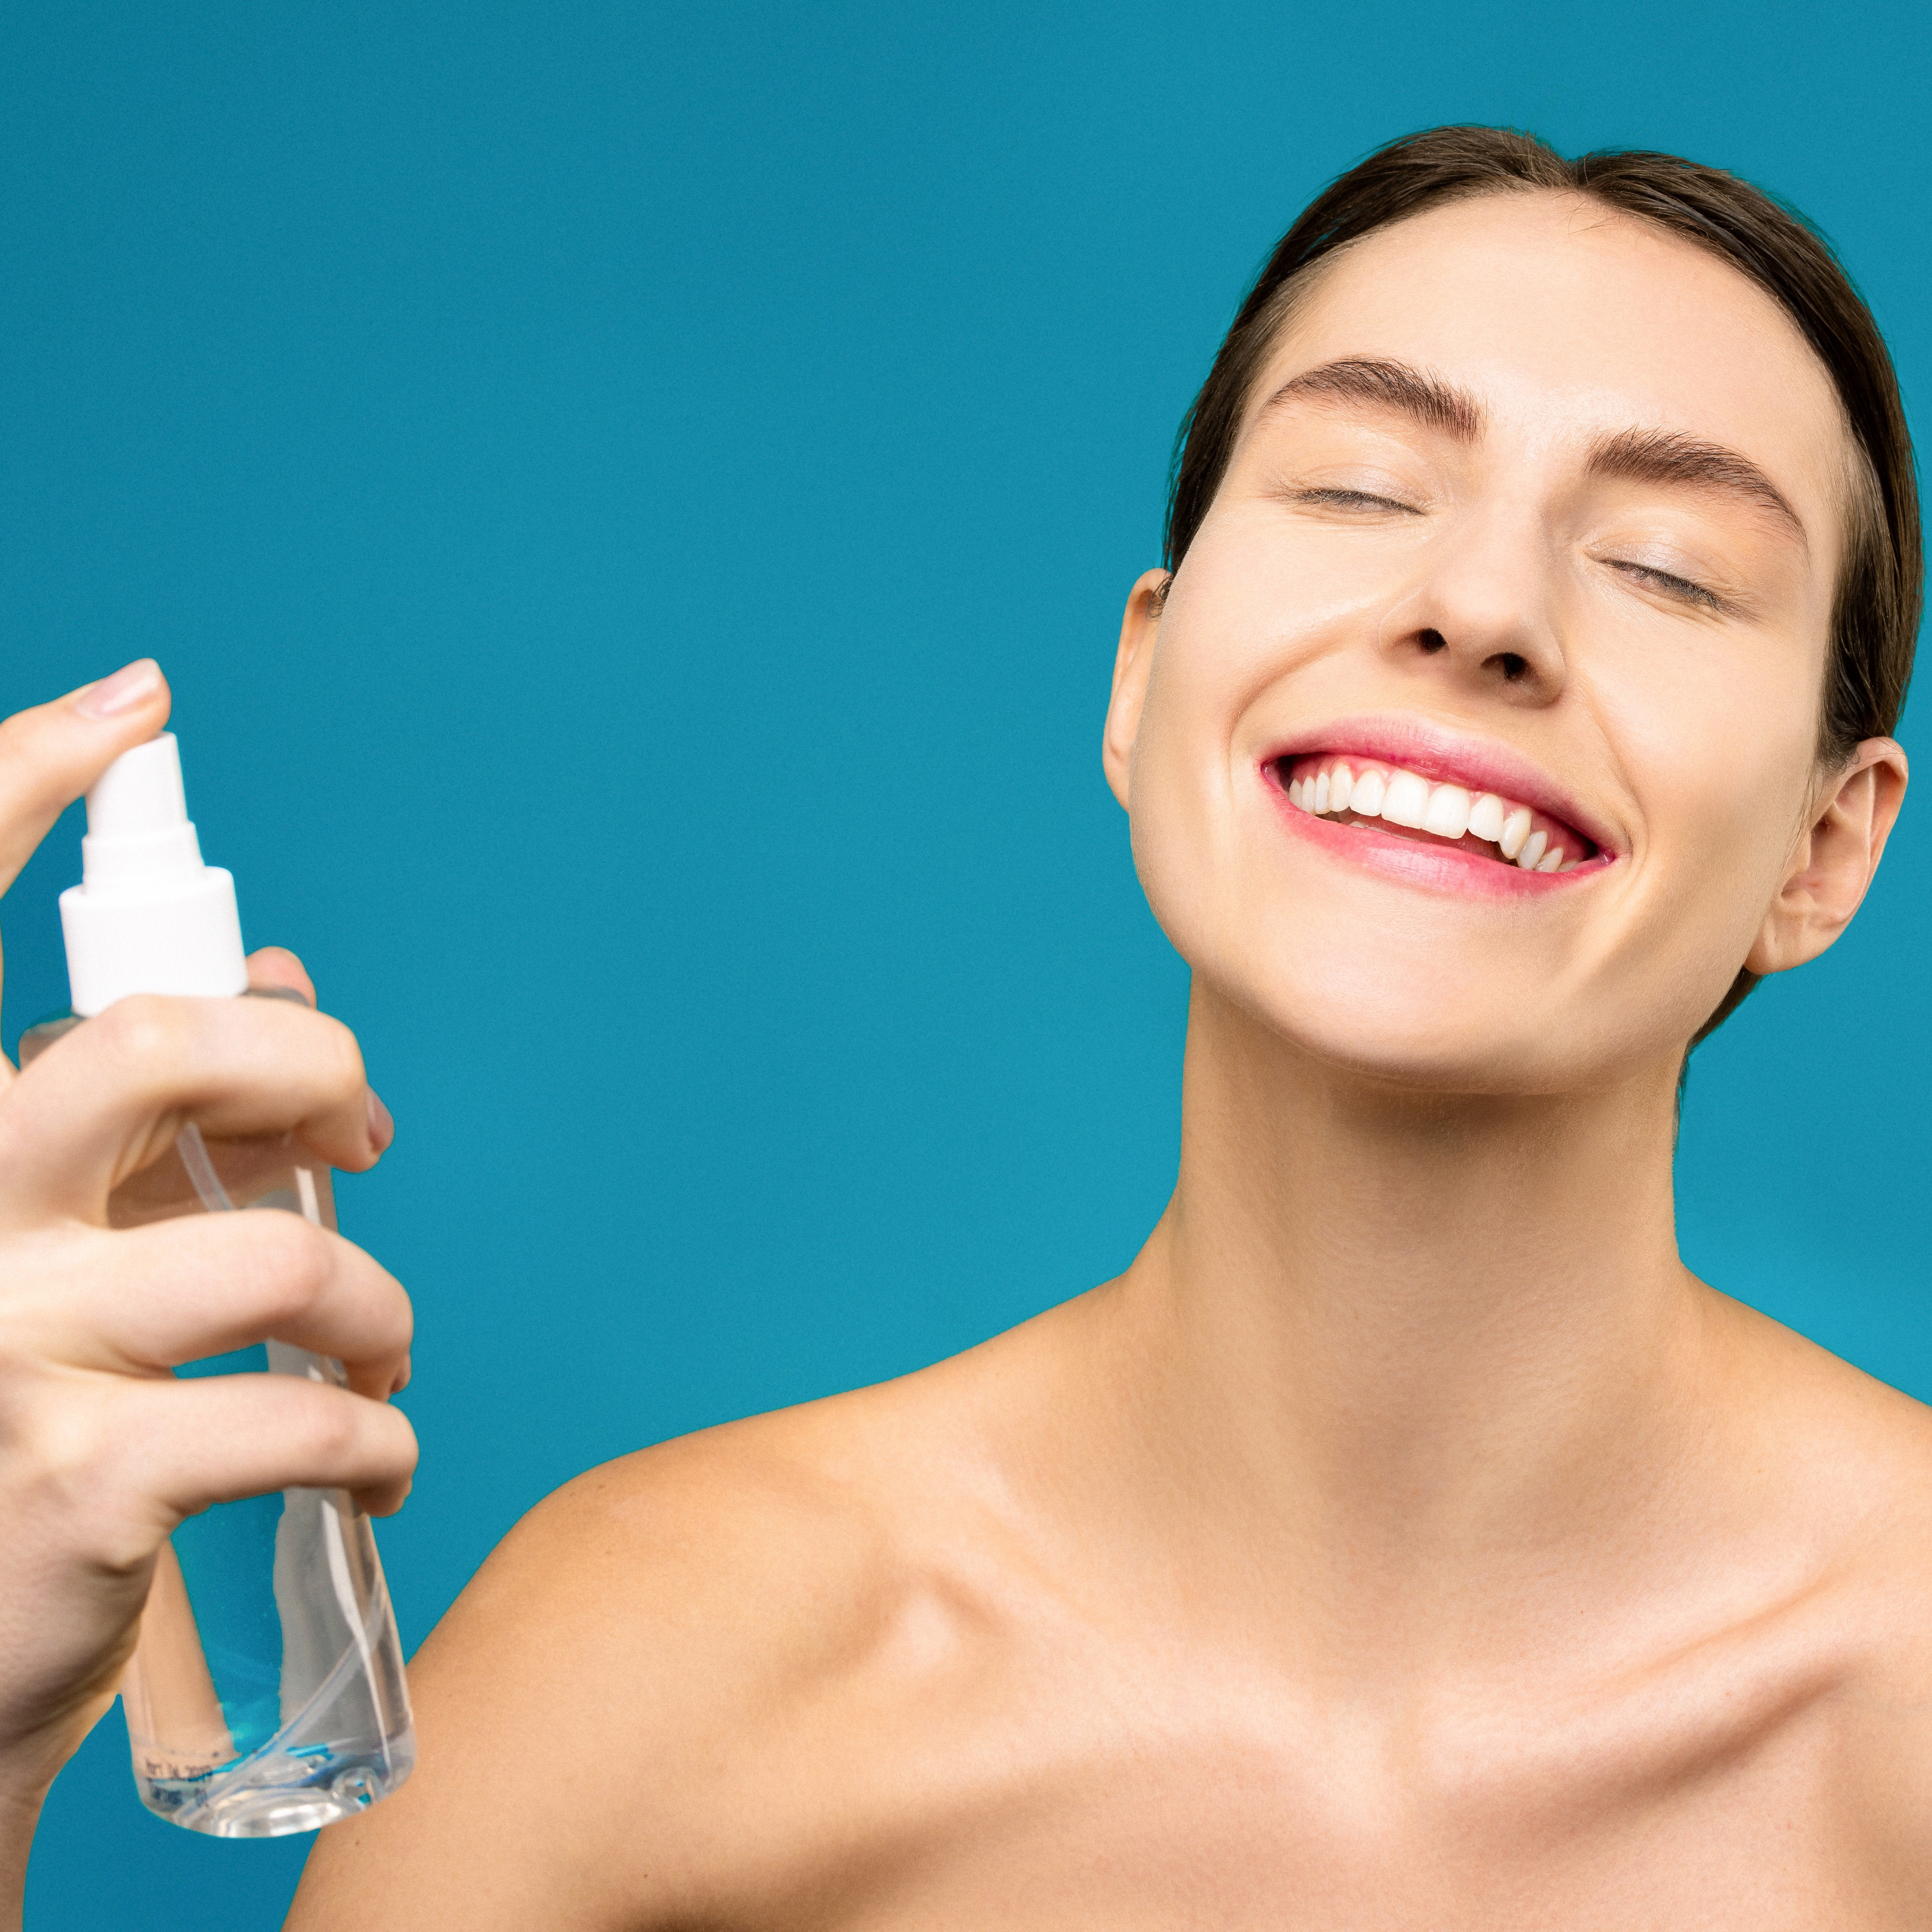 smiling-woman-holding-clear-spray-bottle-3762561